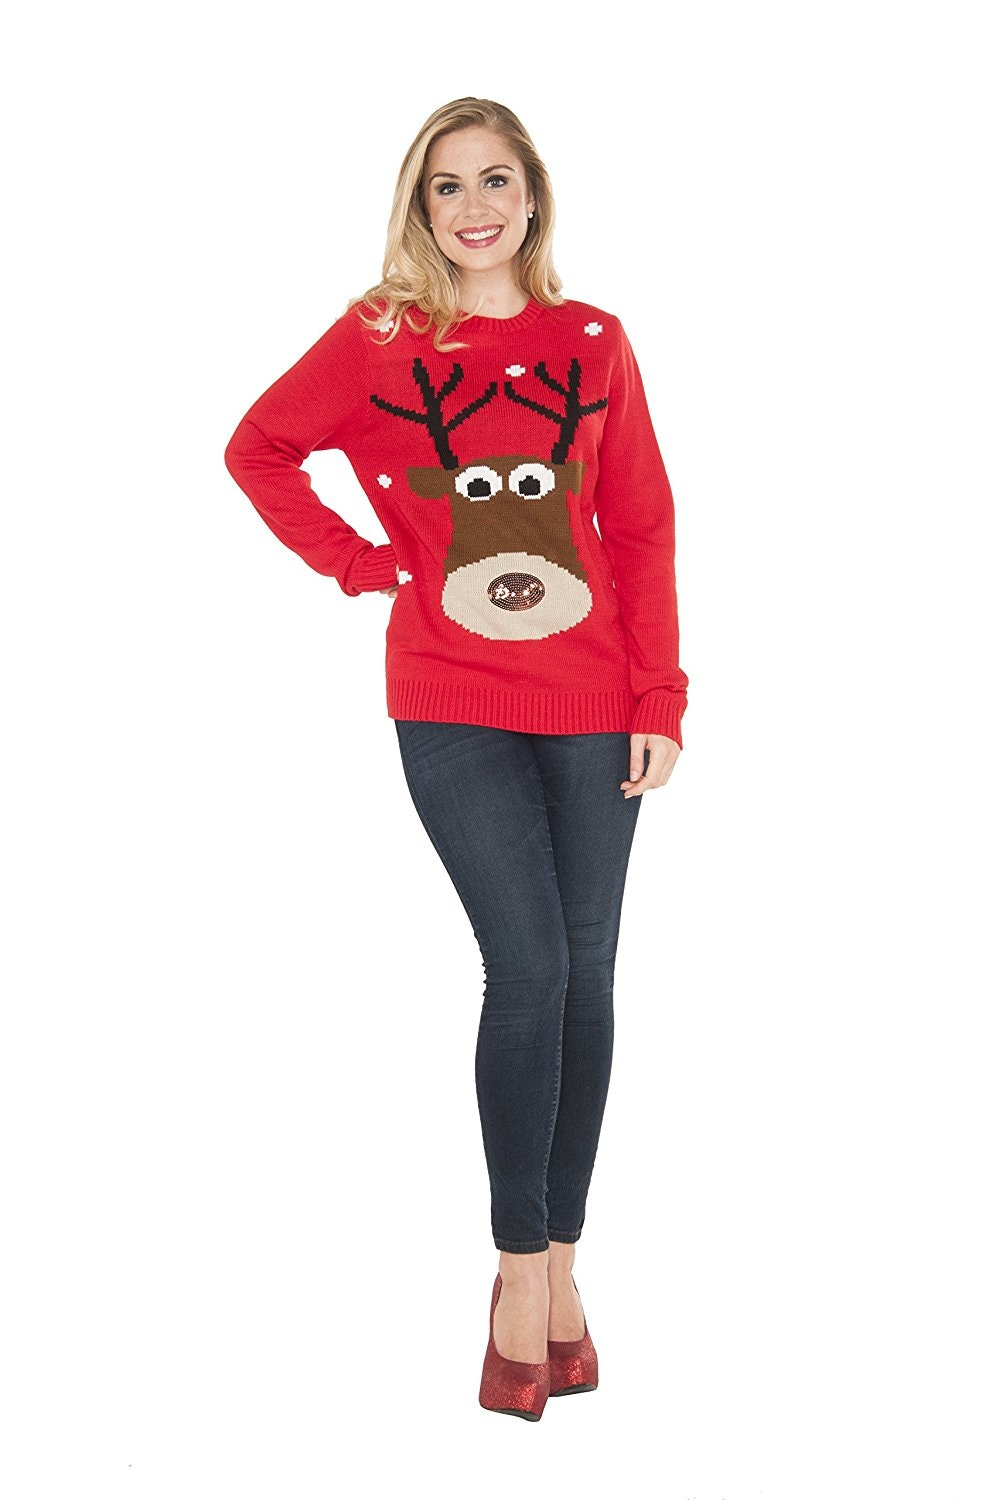 5 Matching Christmas Sweaters For Dogs & Owners That Are Pawfect For ...